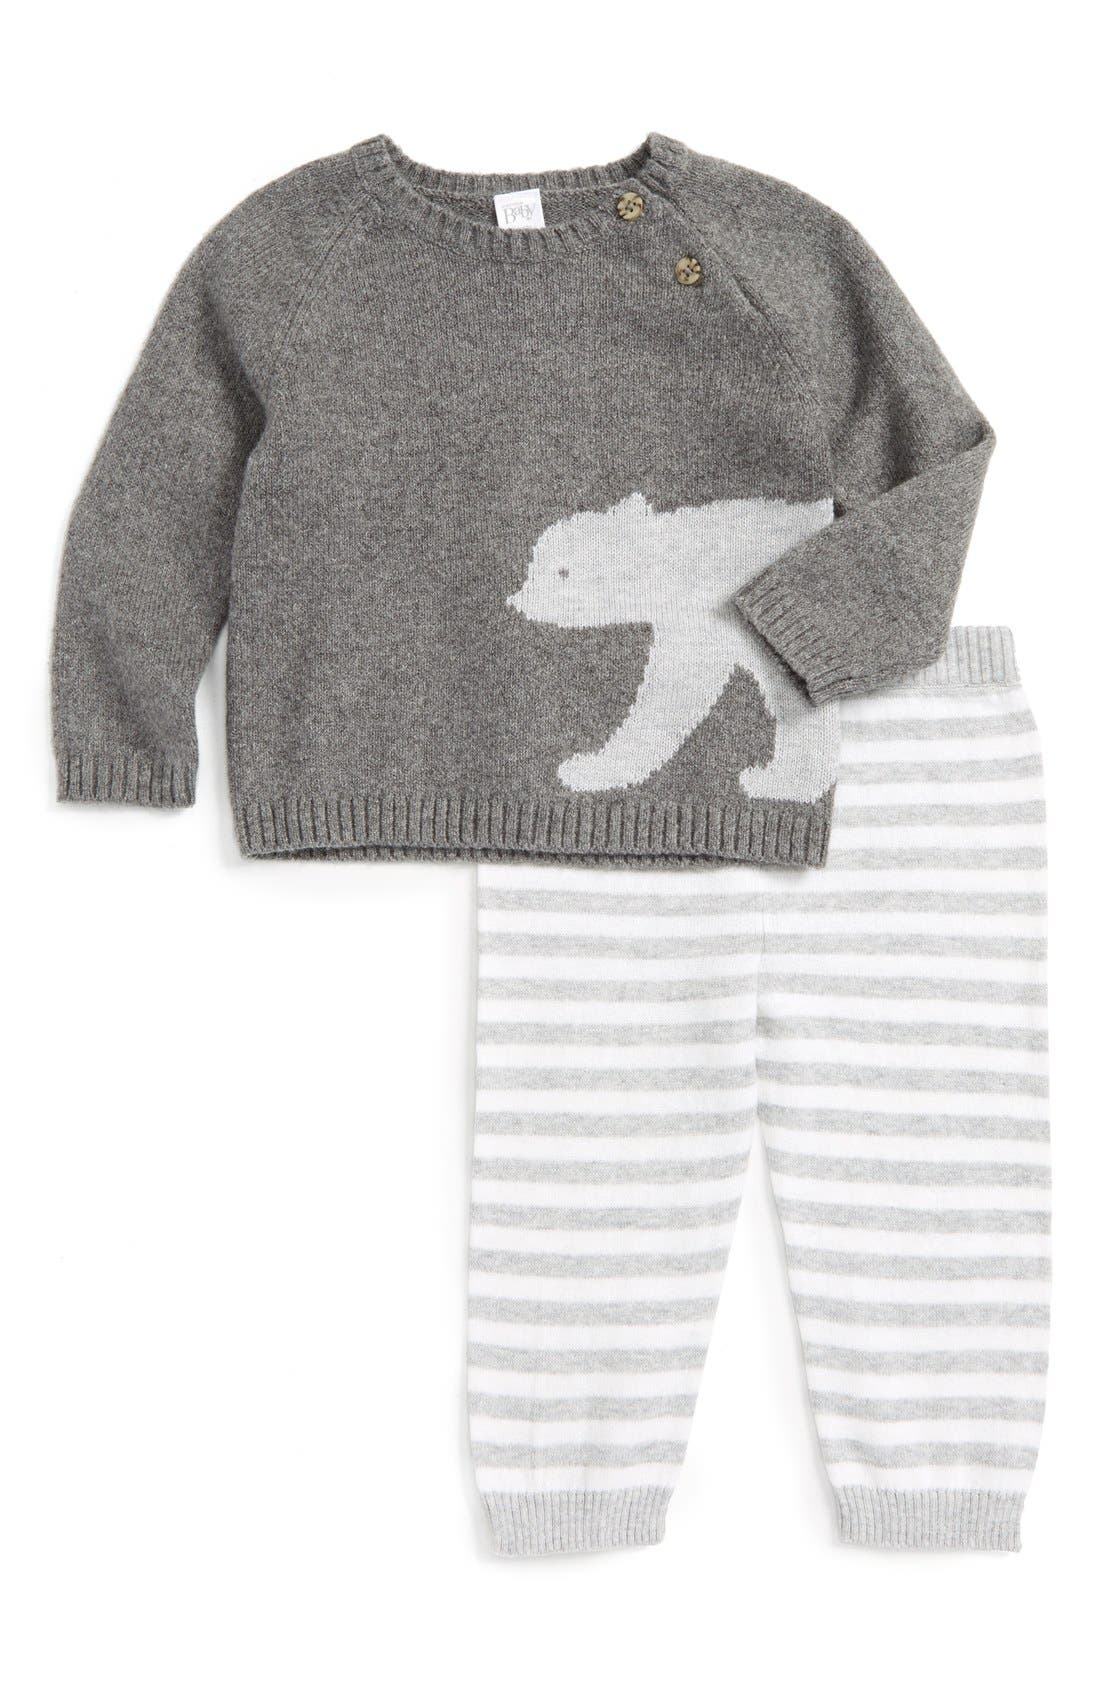 NORDSTROM BABY, Knit Sweater & Pants Set, Main thumbnail 1, color, 050